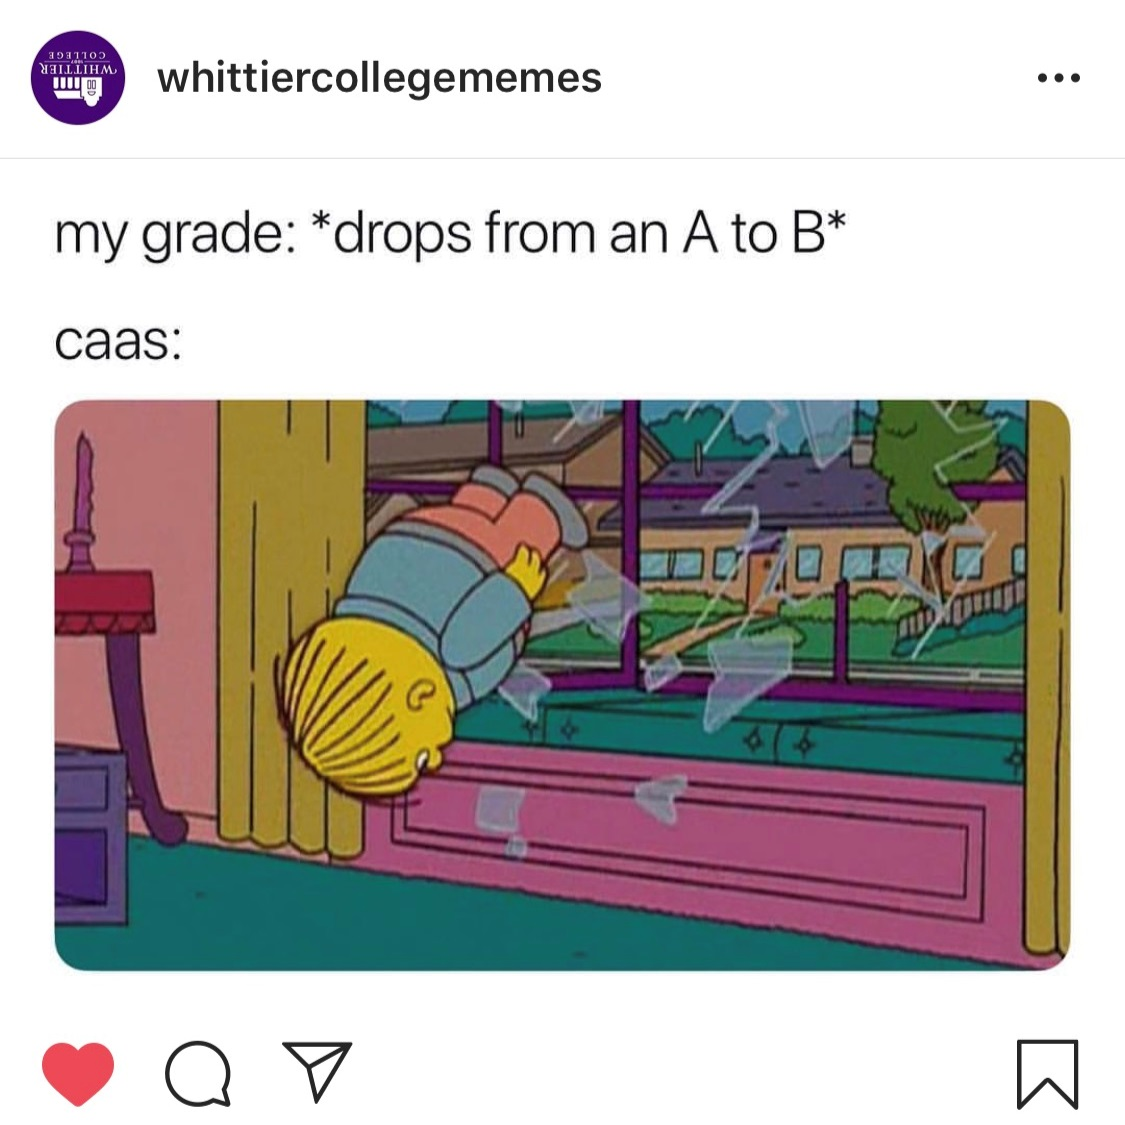 The memes on the  @whittiercollegememes  page range from attendance, to grades and more.  COURTESY OF  WHITTIERCOLLEGEMEMES